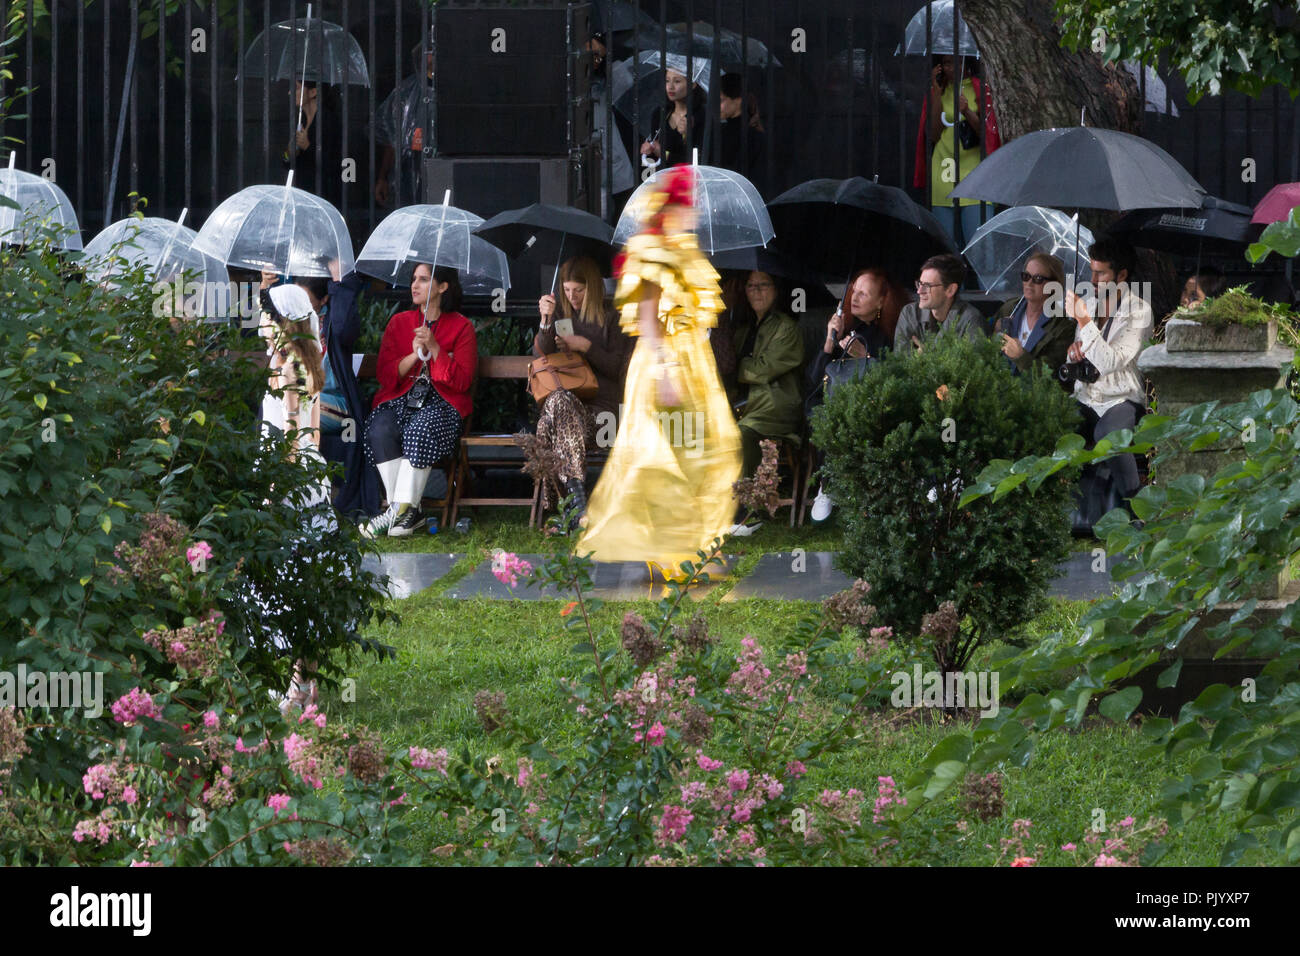 New York, New York, USA. 9th Sep, 2018. Grace Coddington and others watch the Rodarte Fall Fashion Show, New York City Marble Cemetery, New York, September 9, 2018. Credit: Beowulf Sheehan/ZUMA Wire/Alamy Live News - Stock Image